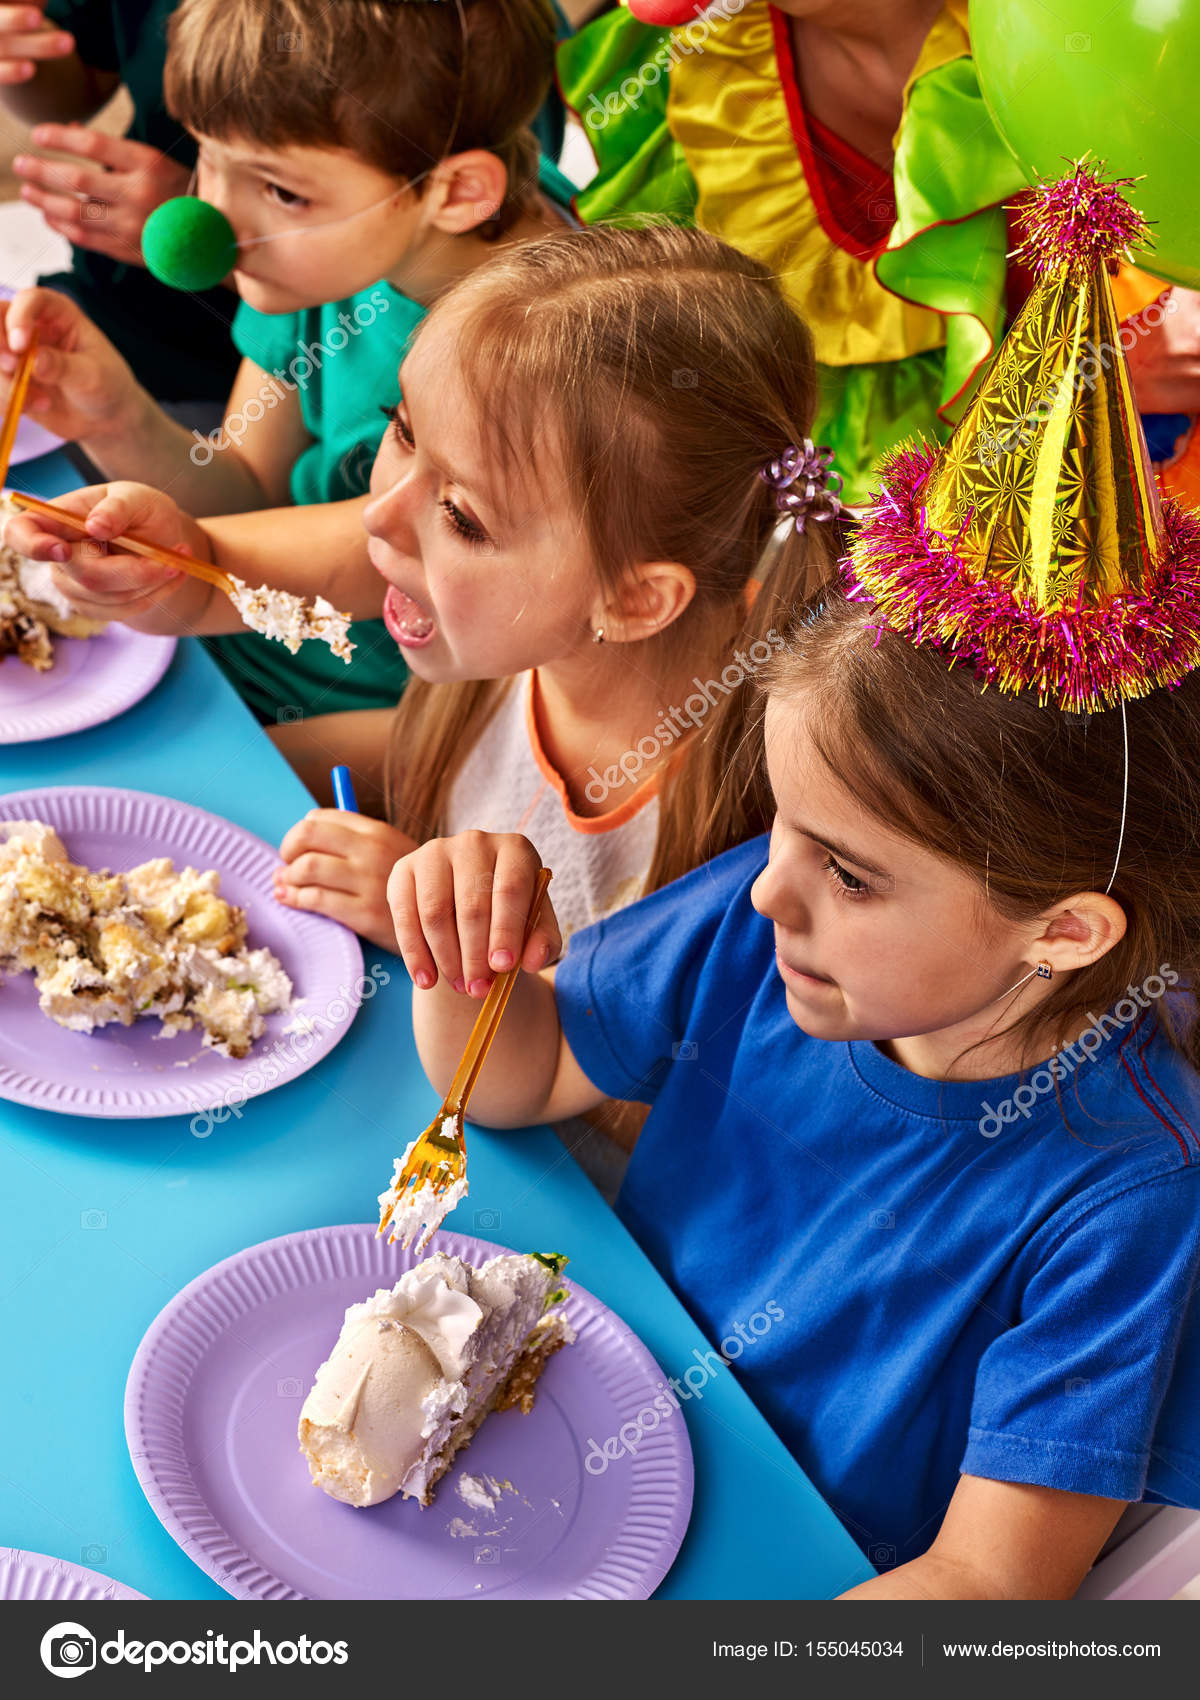 Stock Birthday Children Clown Eating Cake With Two Girl Together Kids Messy Face Have Tier Fight Fun Happy Childhood Of Small Group People